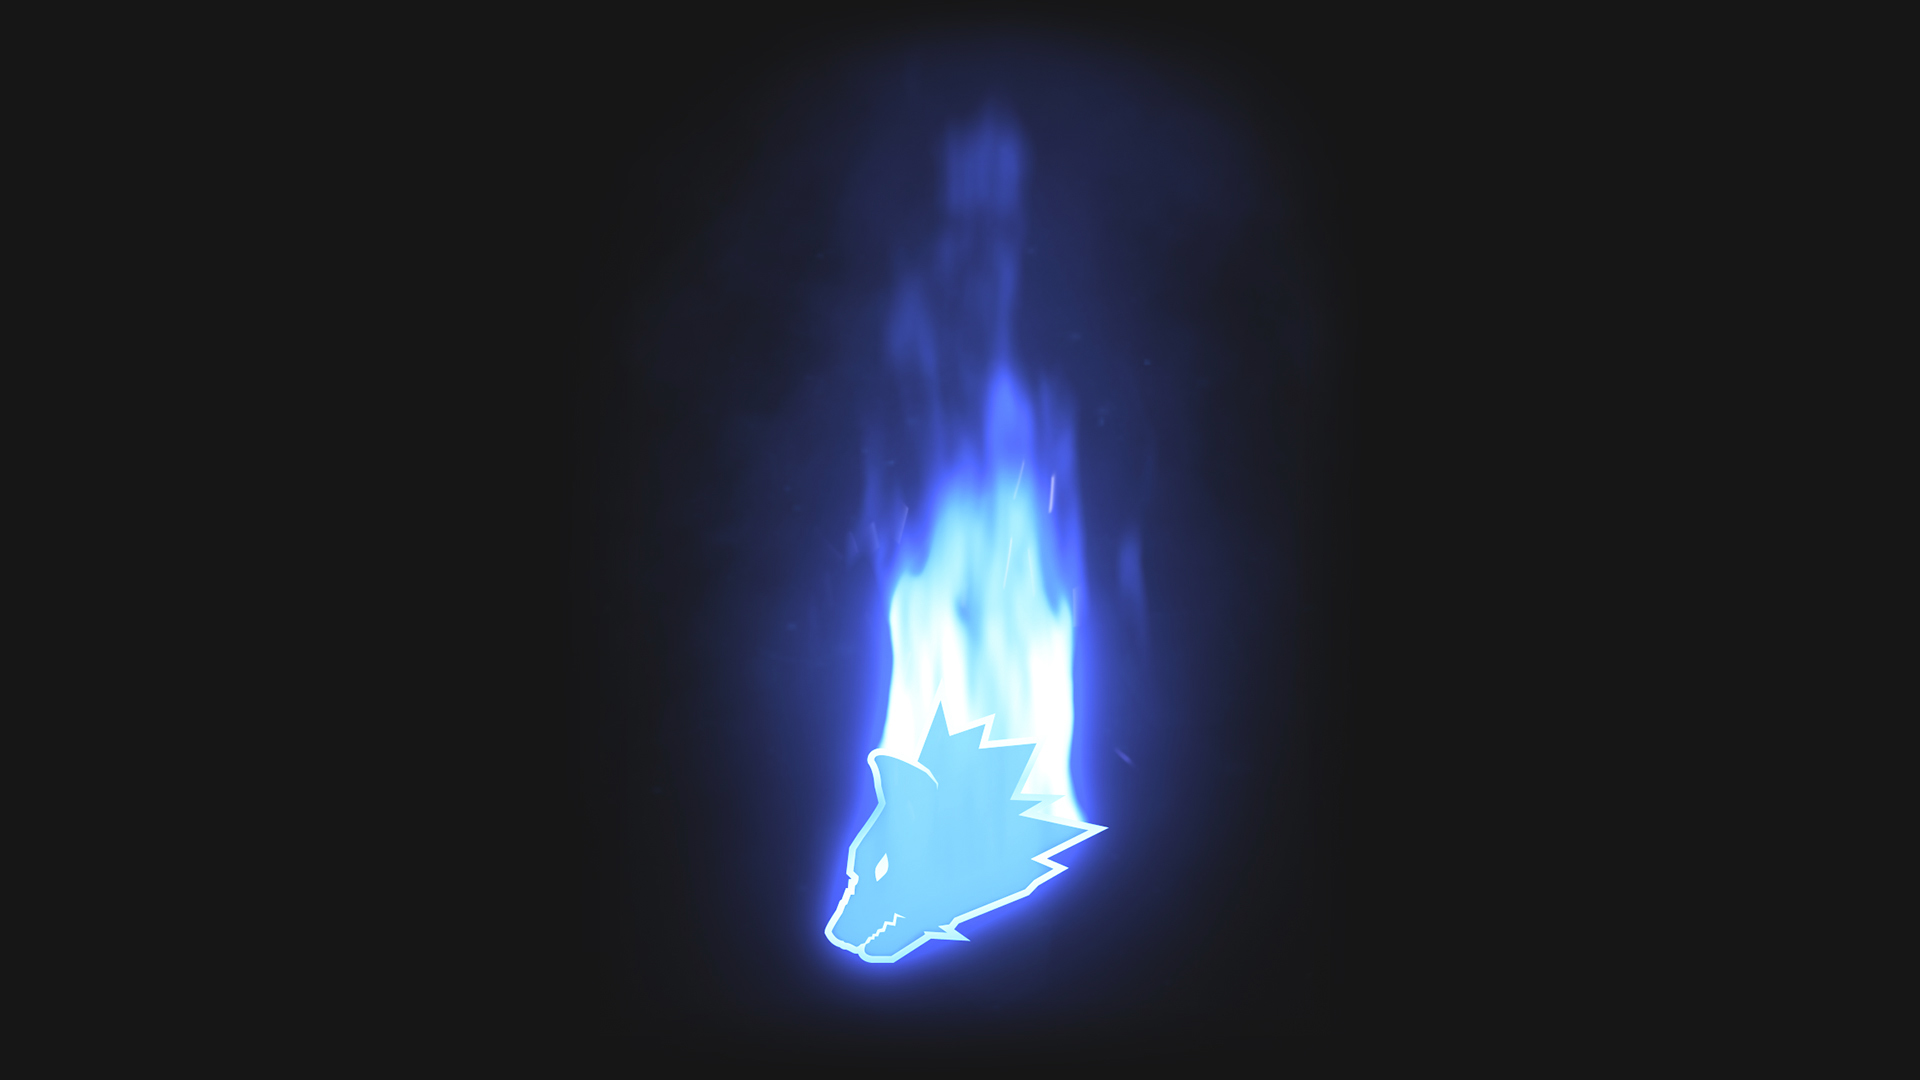 DESKTOP WALLPAPERFLAME - DOWNLOAD (1920 x 1080)